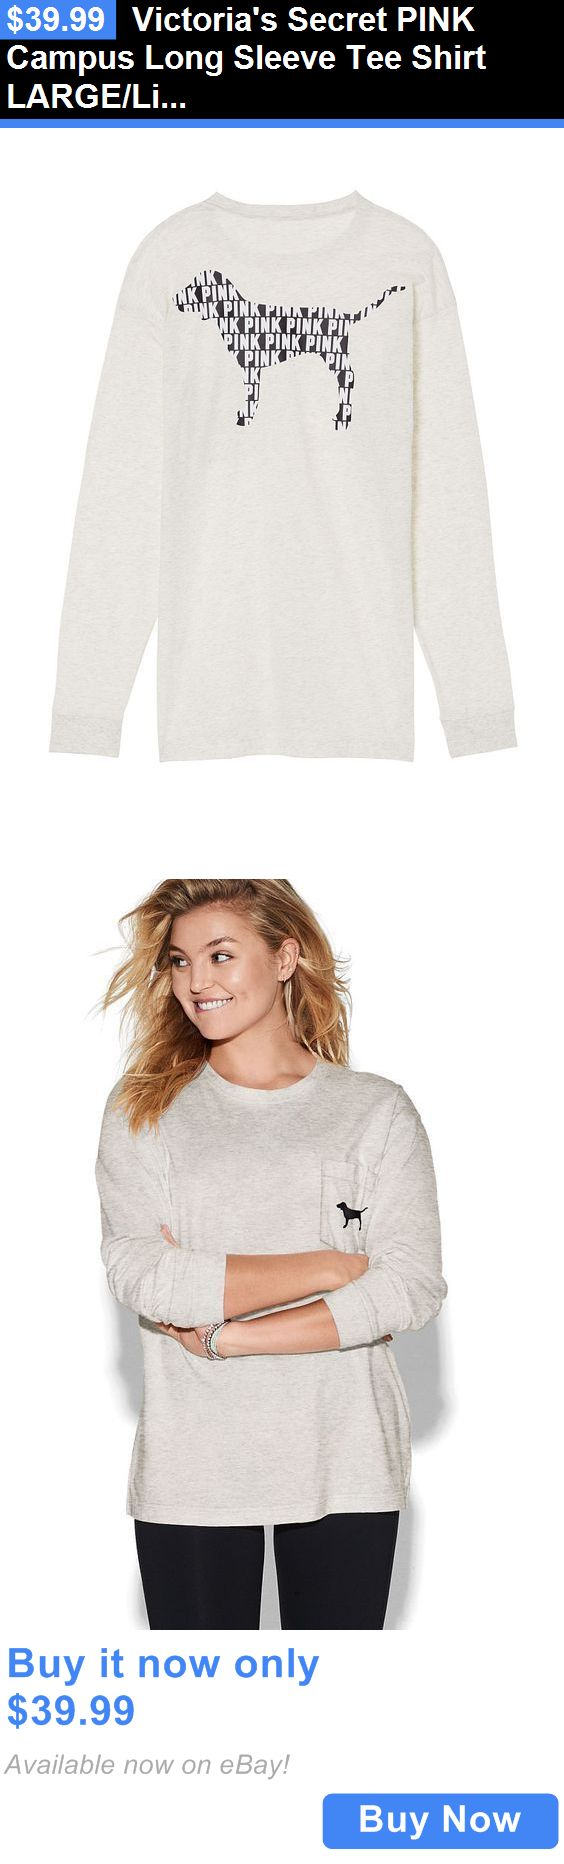 Women T Shirts: Victorias Secret Pink Campus Long Sleeve Tee Shirt Large/Light Grey Pink Dog BUY IT NOW ONLY: $39.99